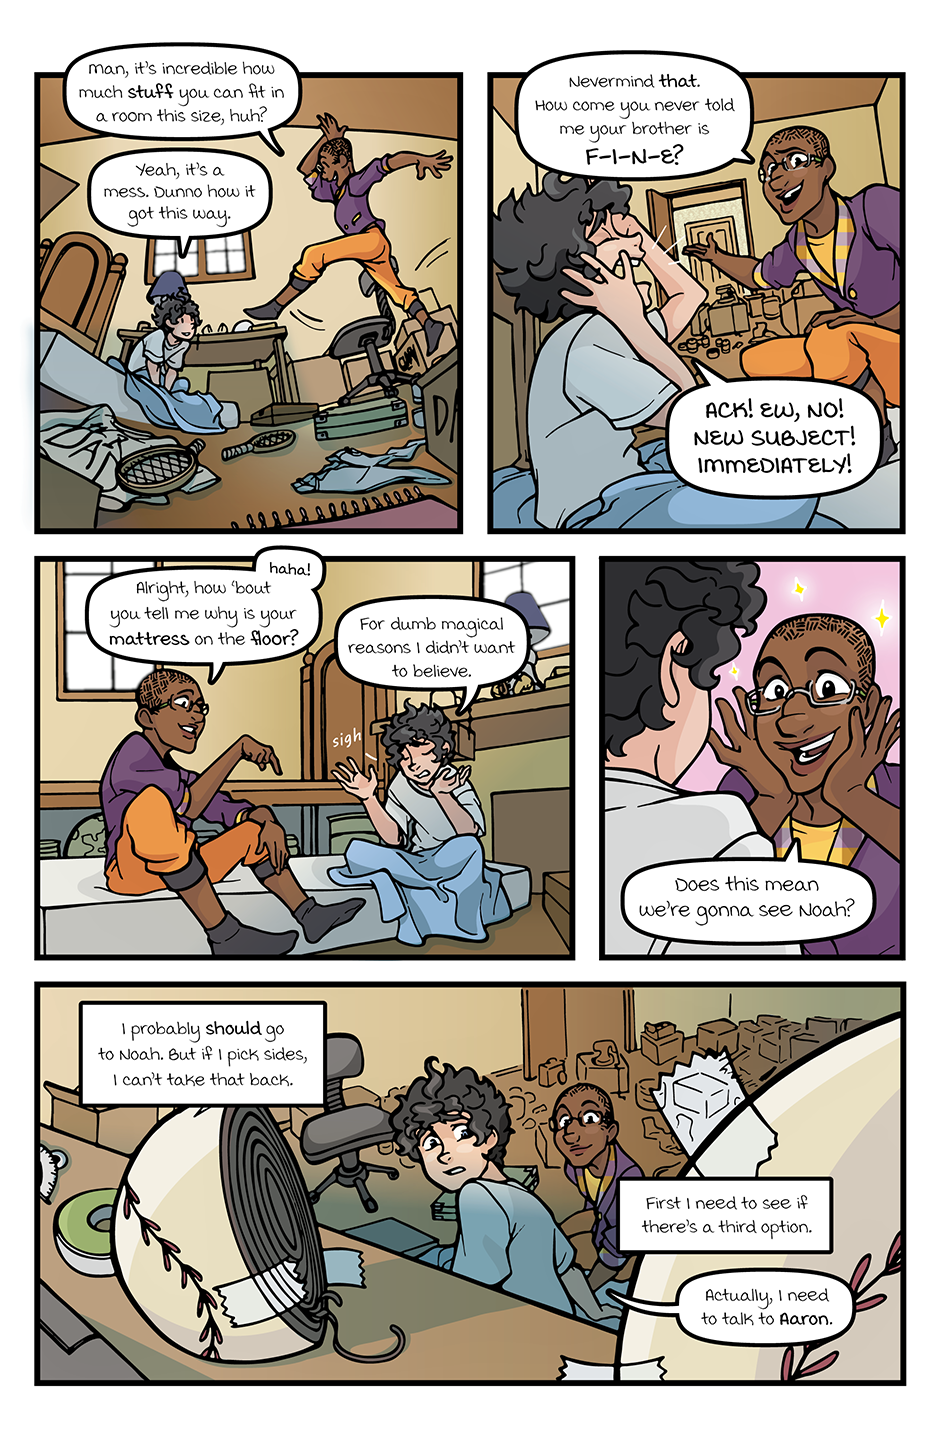 Ch07-P03_forSS.png